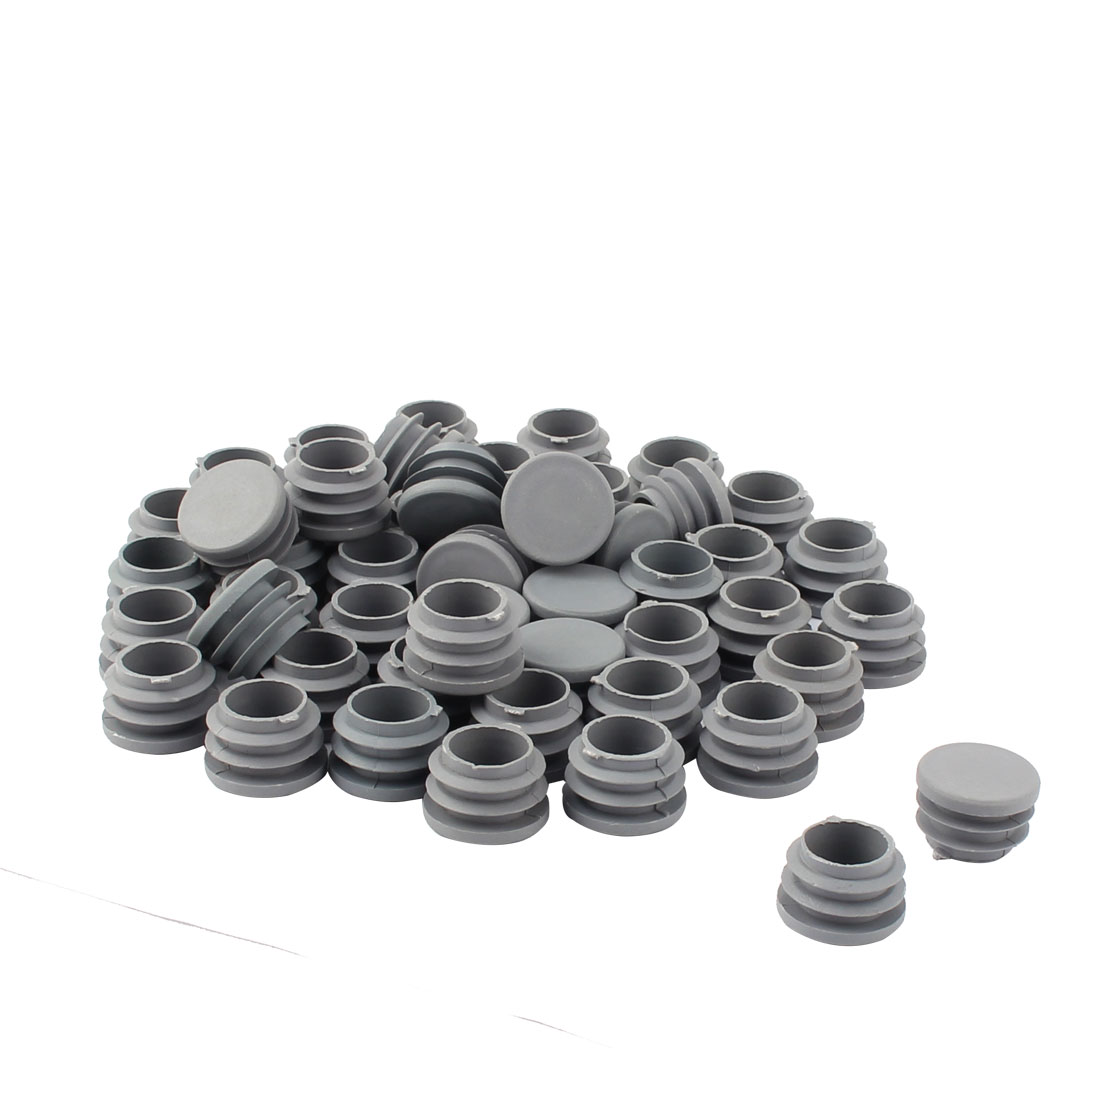 Furniture Table Chair Plastic Round Tube Pipe Insert Cap Cover Protector Gray 25mm Dia 50pcs